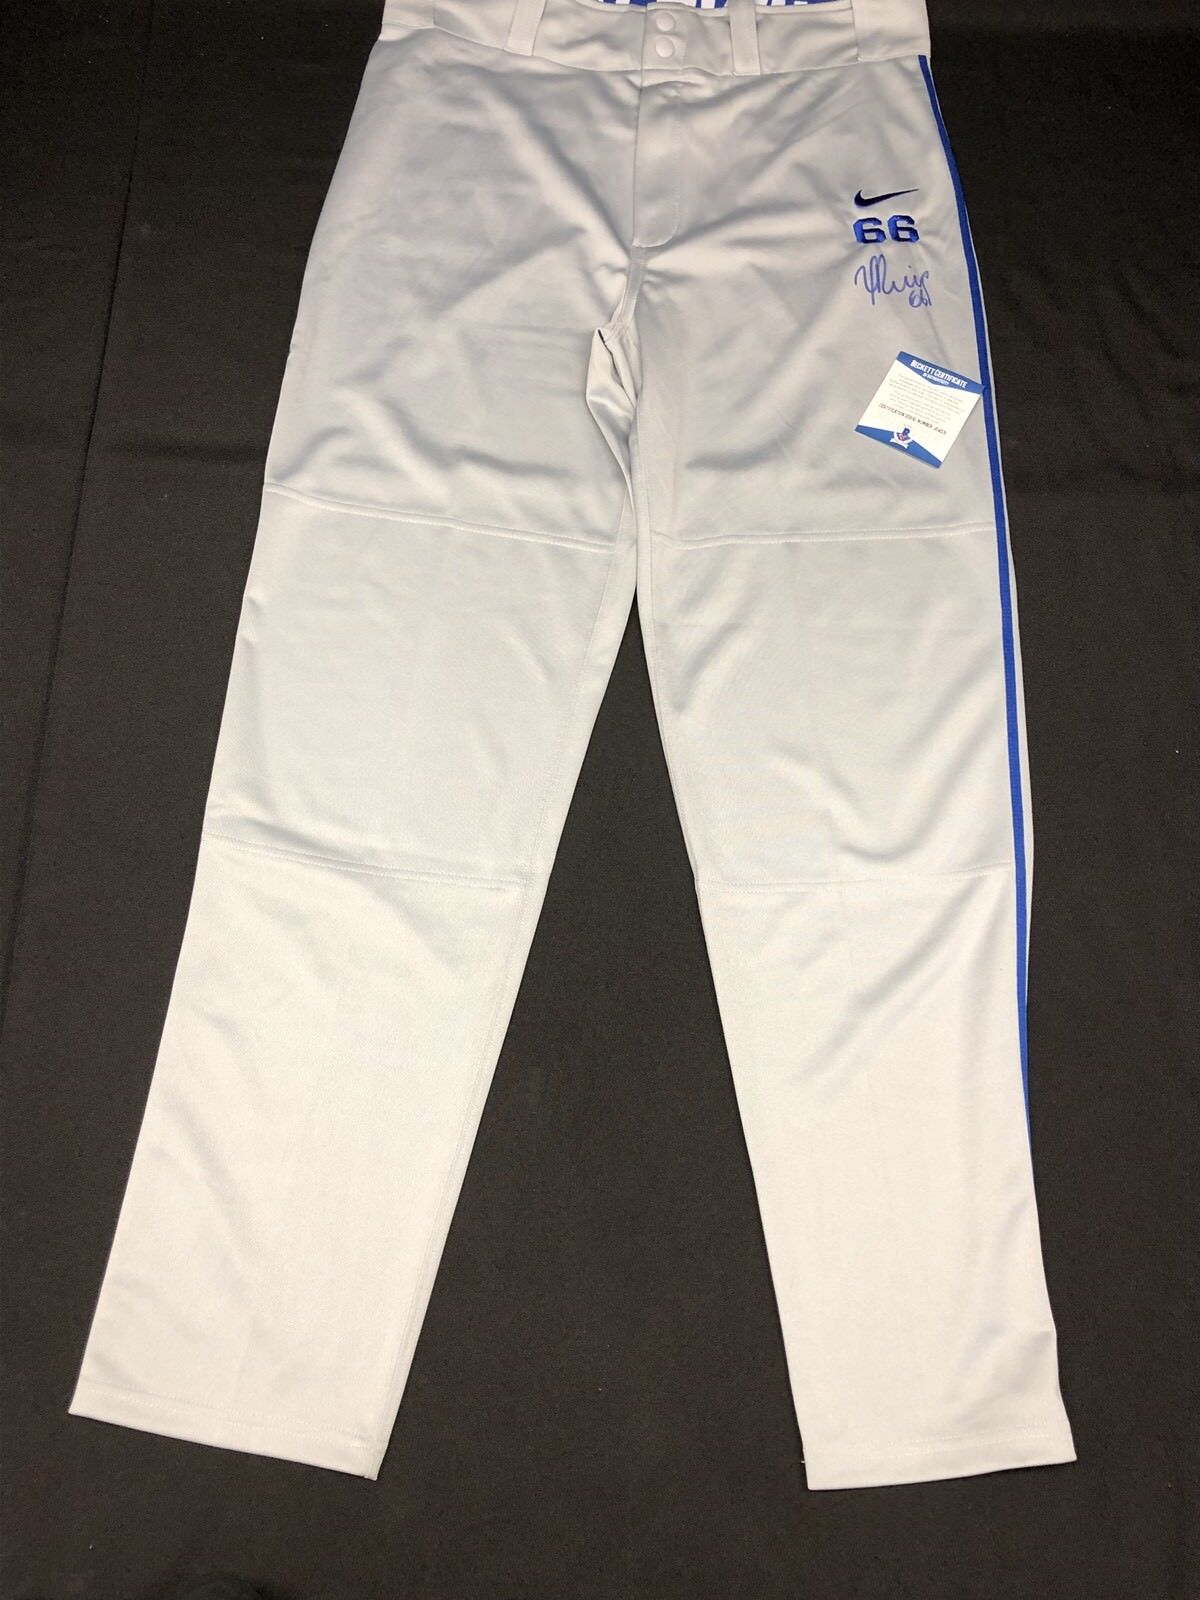 Yasiel Puig Signed Los Angeles Dodgers Baseball Uniform Pants Beckett BAS J04531